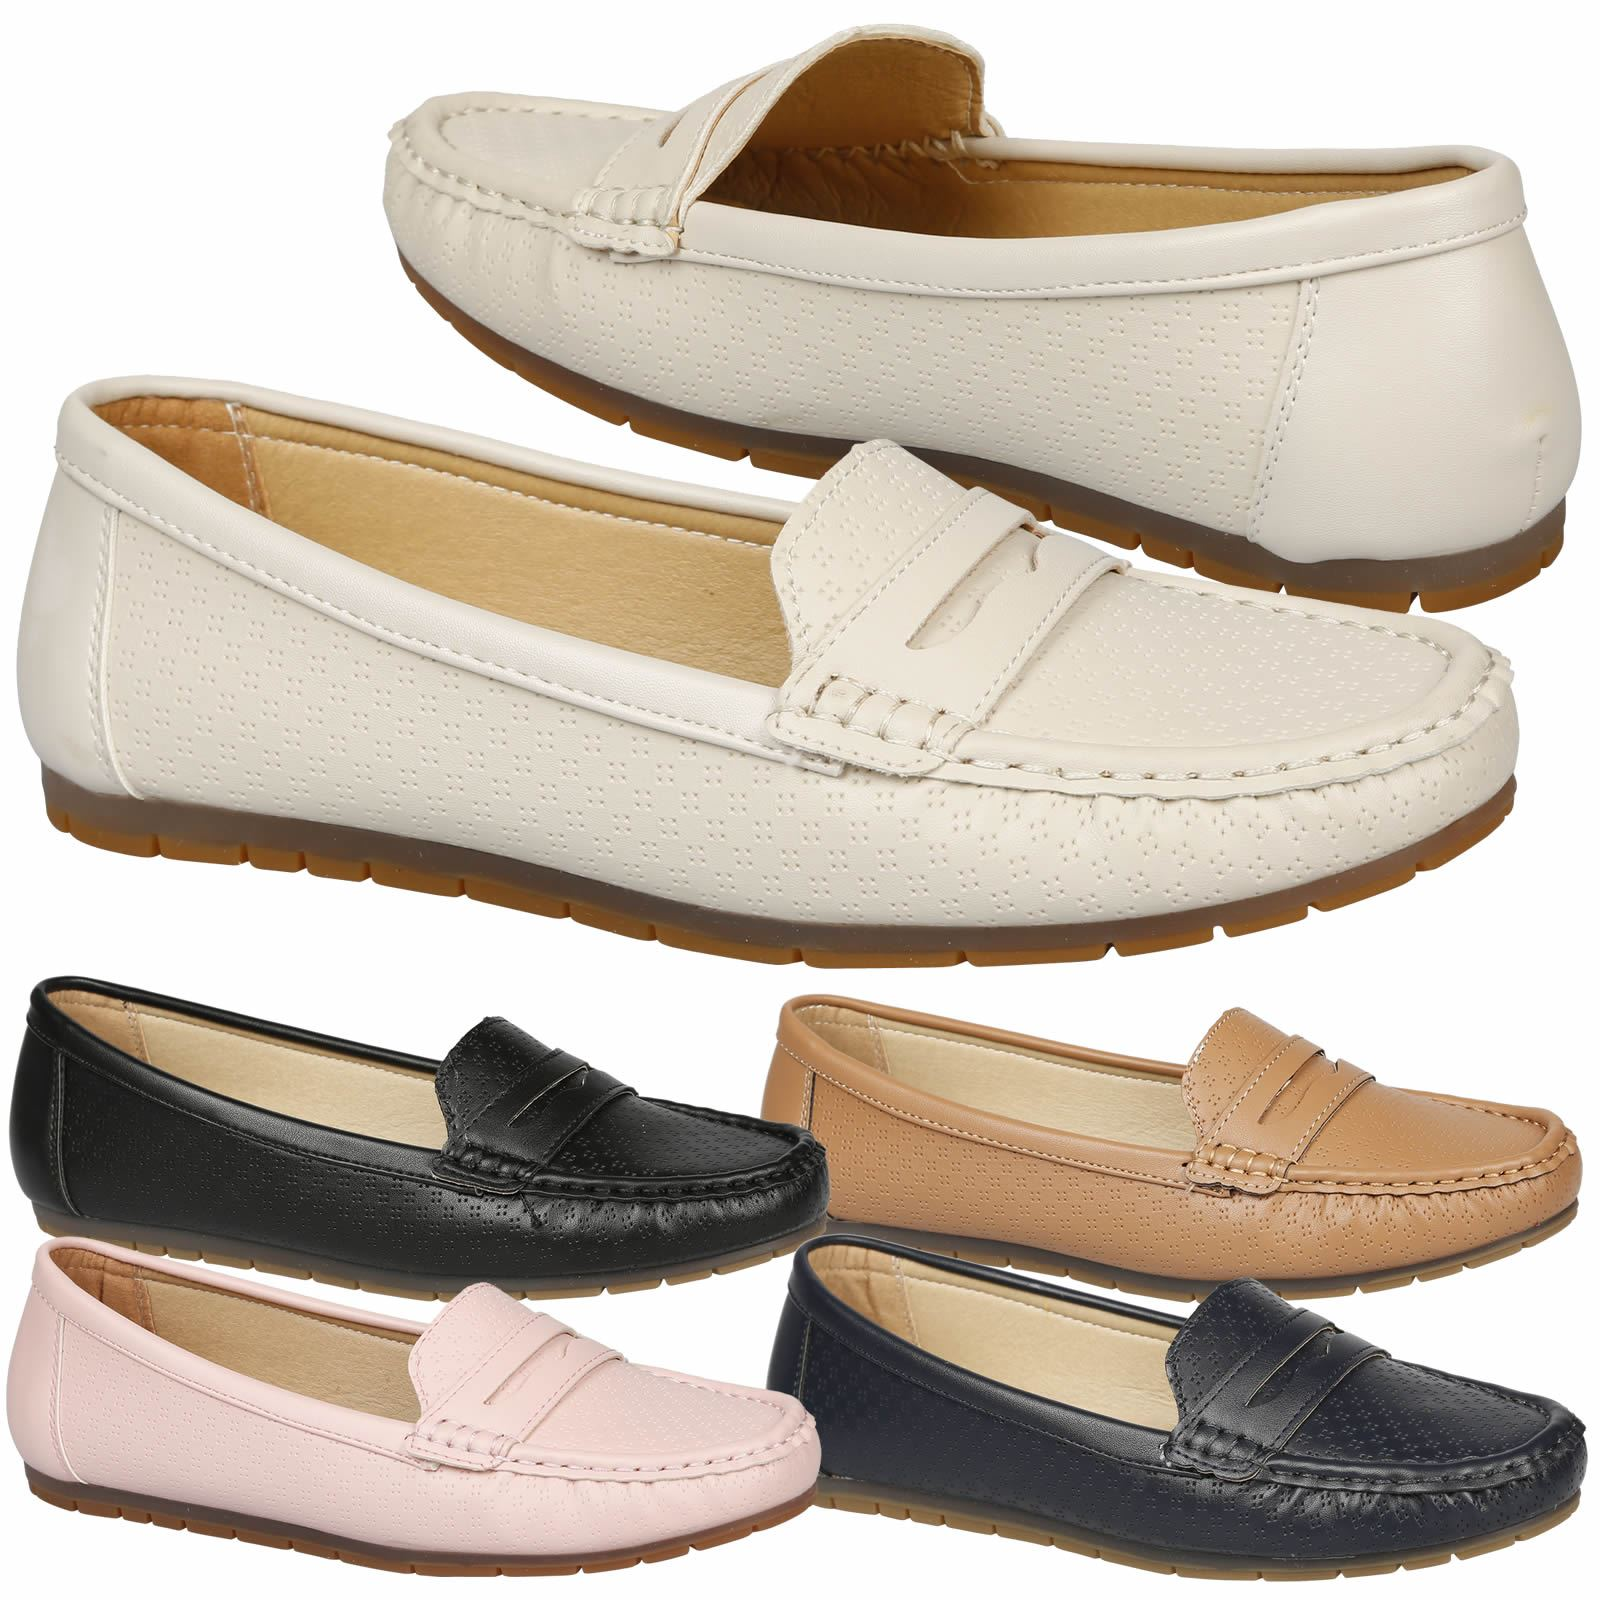 Details About Celinda Womens Comfortable Loafers Shoes Cushioned Sole Moccasins Loafers Flats